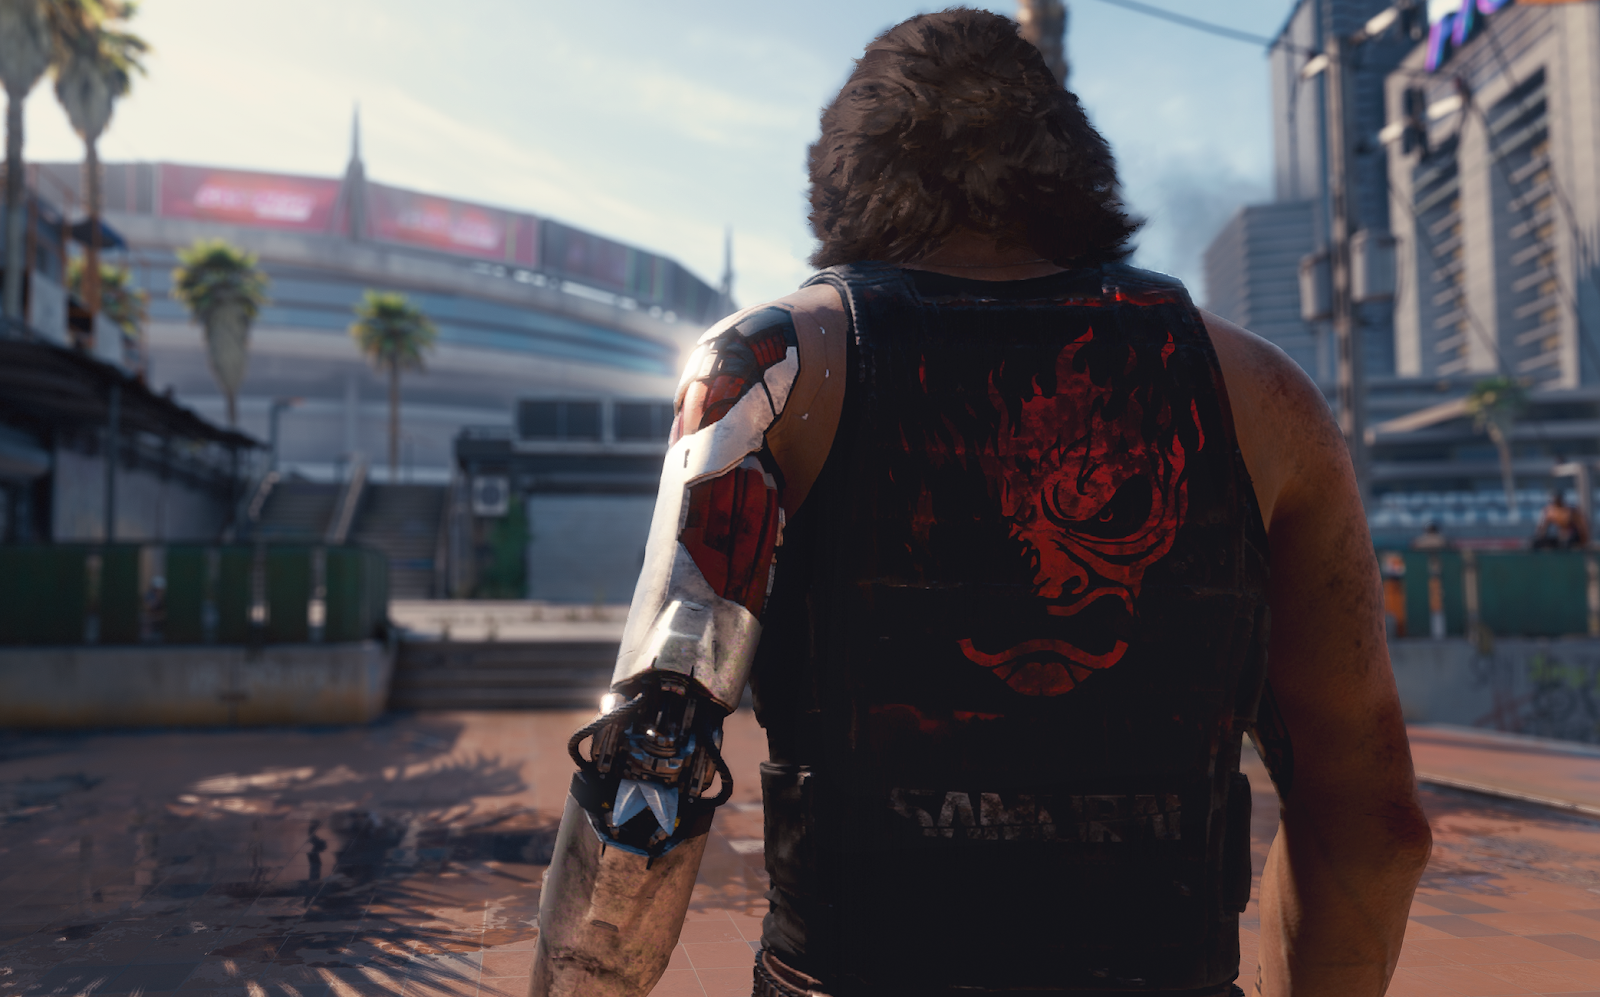 Cyberpunk 2077 Artist Says Controversial In-Game Image Is Commentary On Corporations